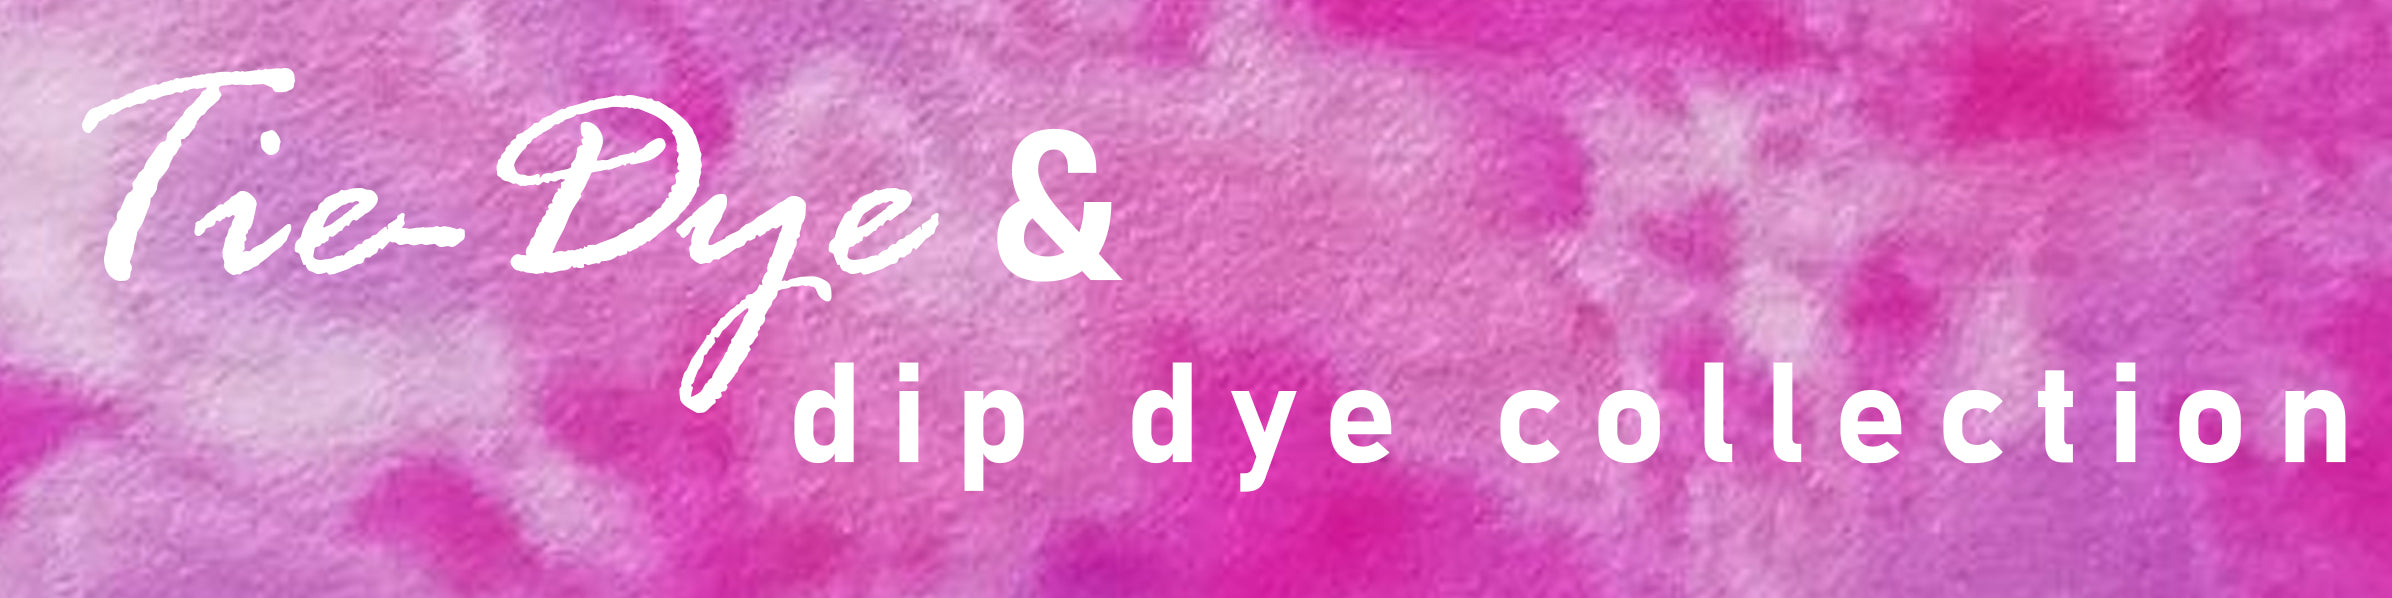 Wholesale Tie Dye - Good Stuff Apparel